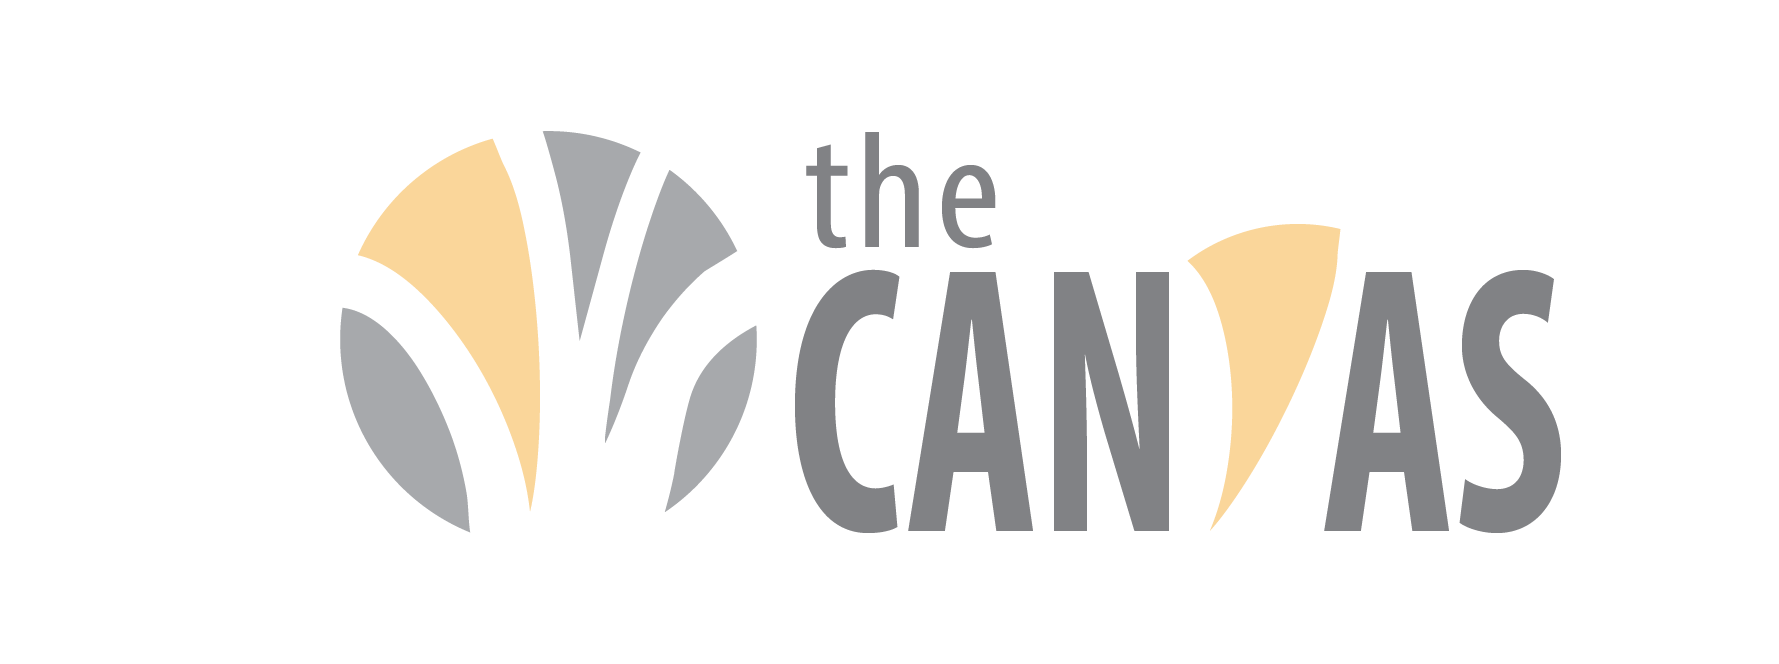 The Canvas Logo_Final1-1.png